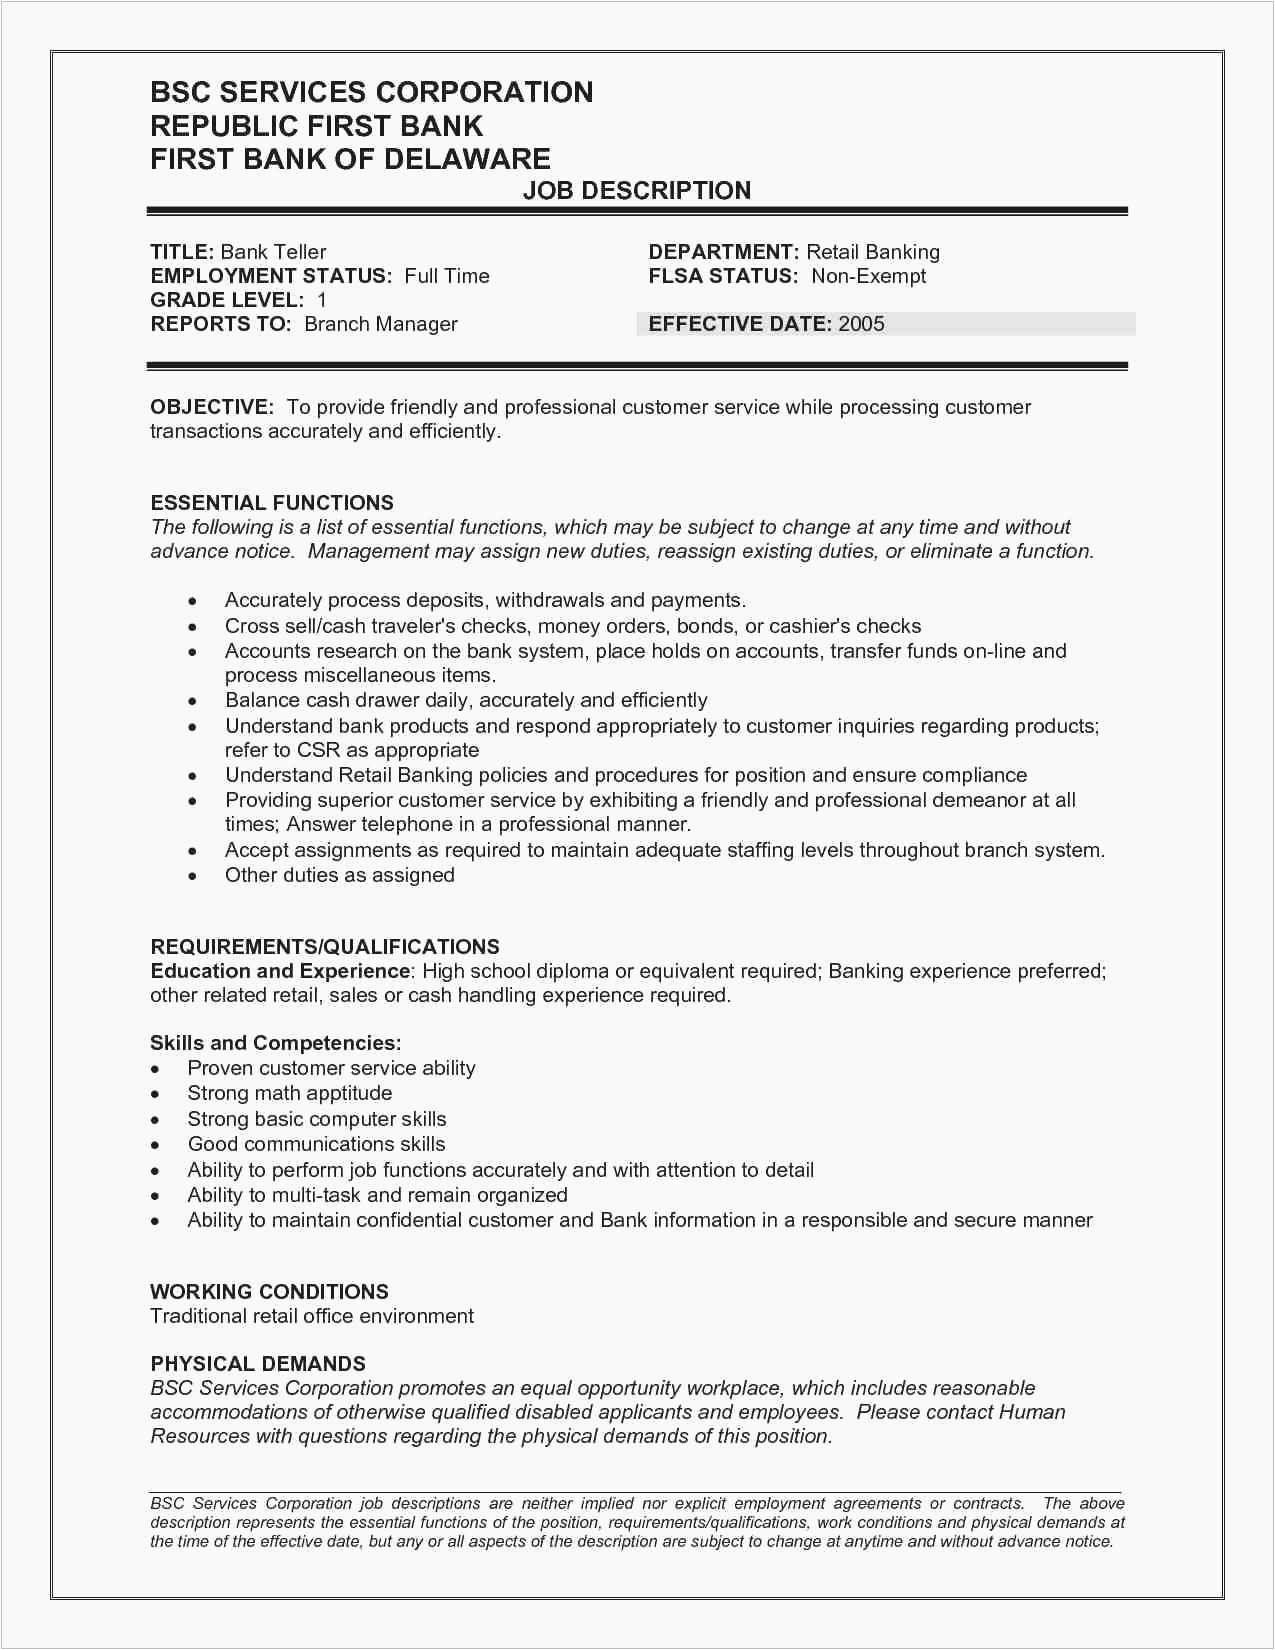 30 Computer Technician Resume Skills With Images Bank Teller